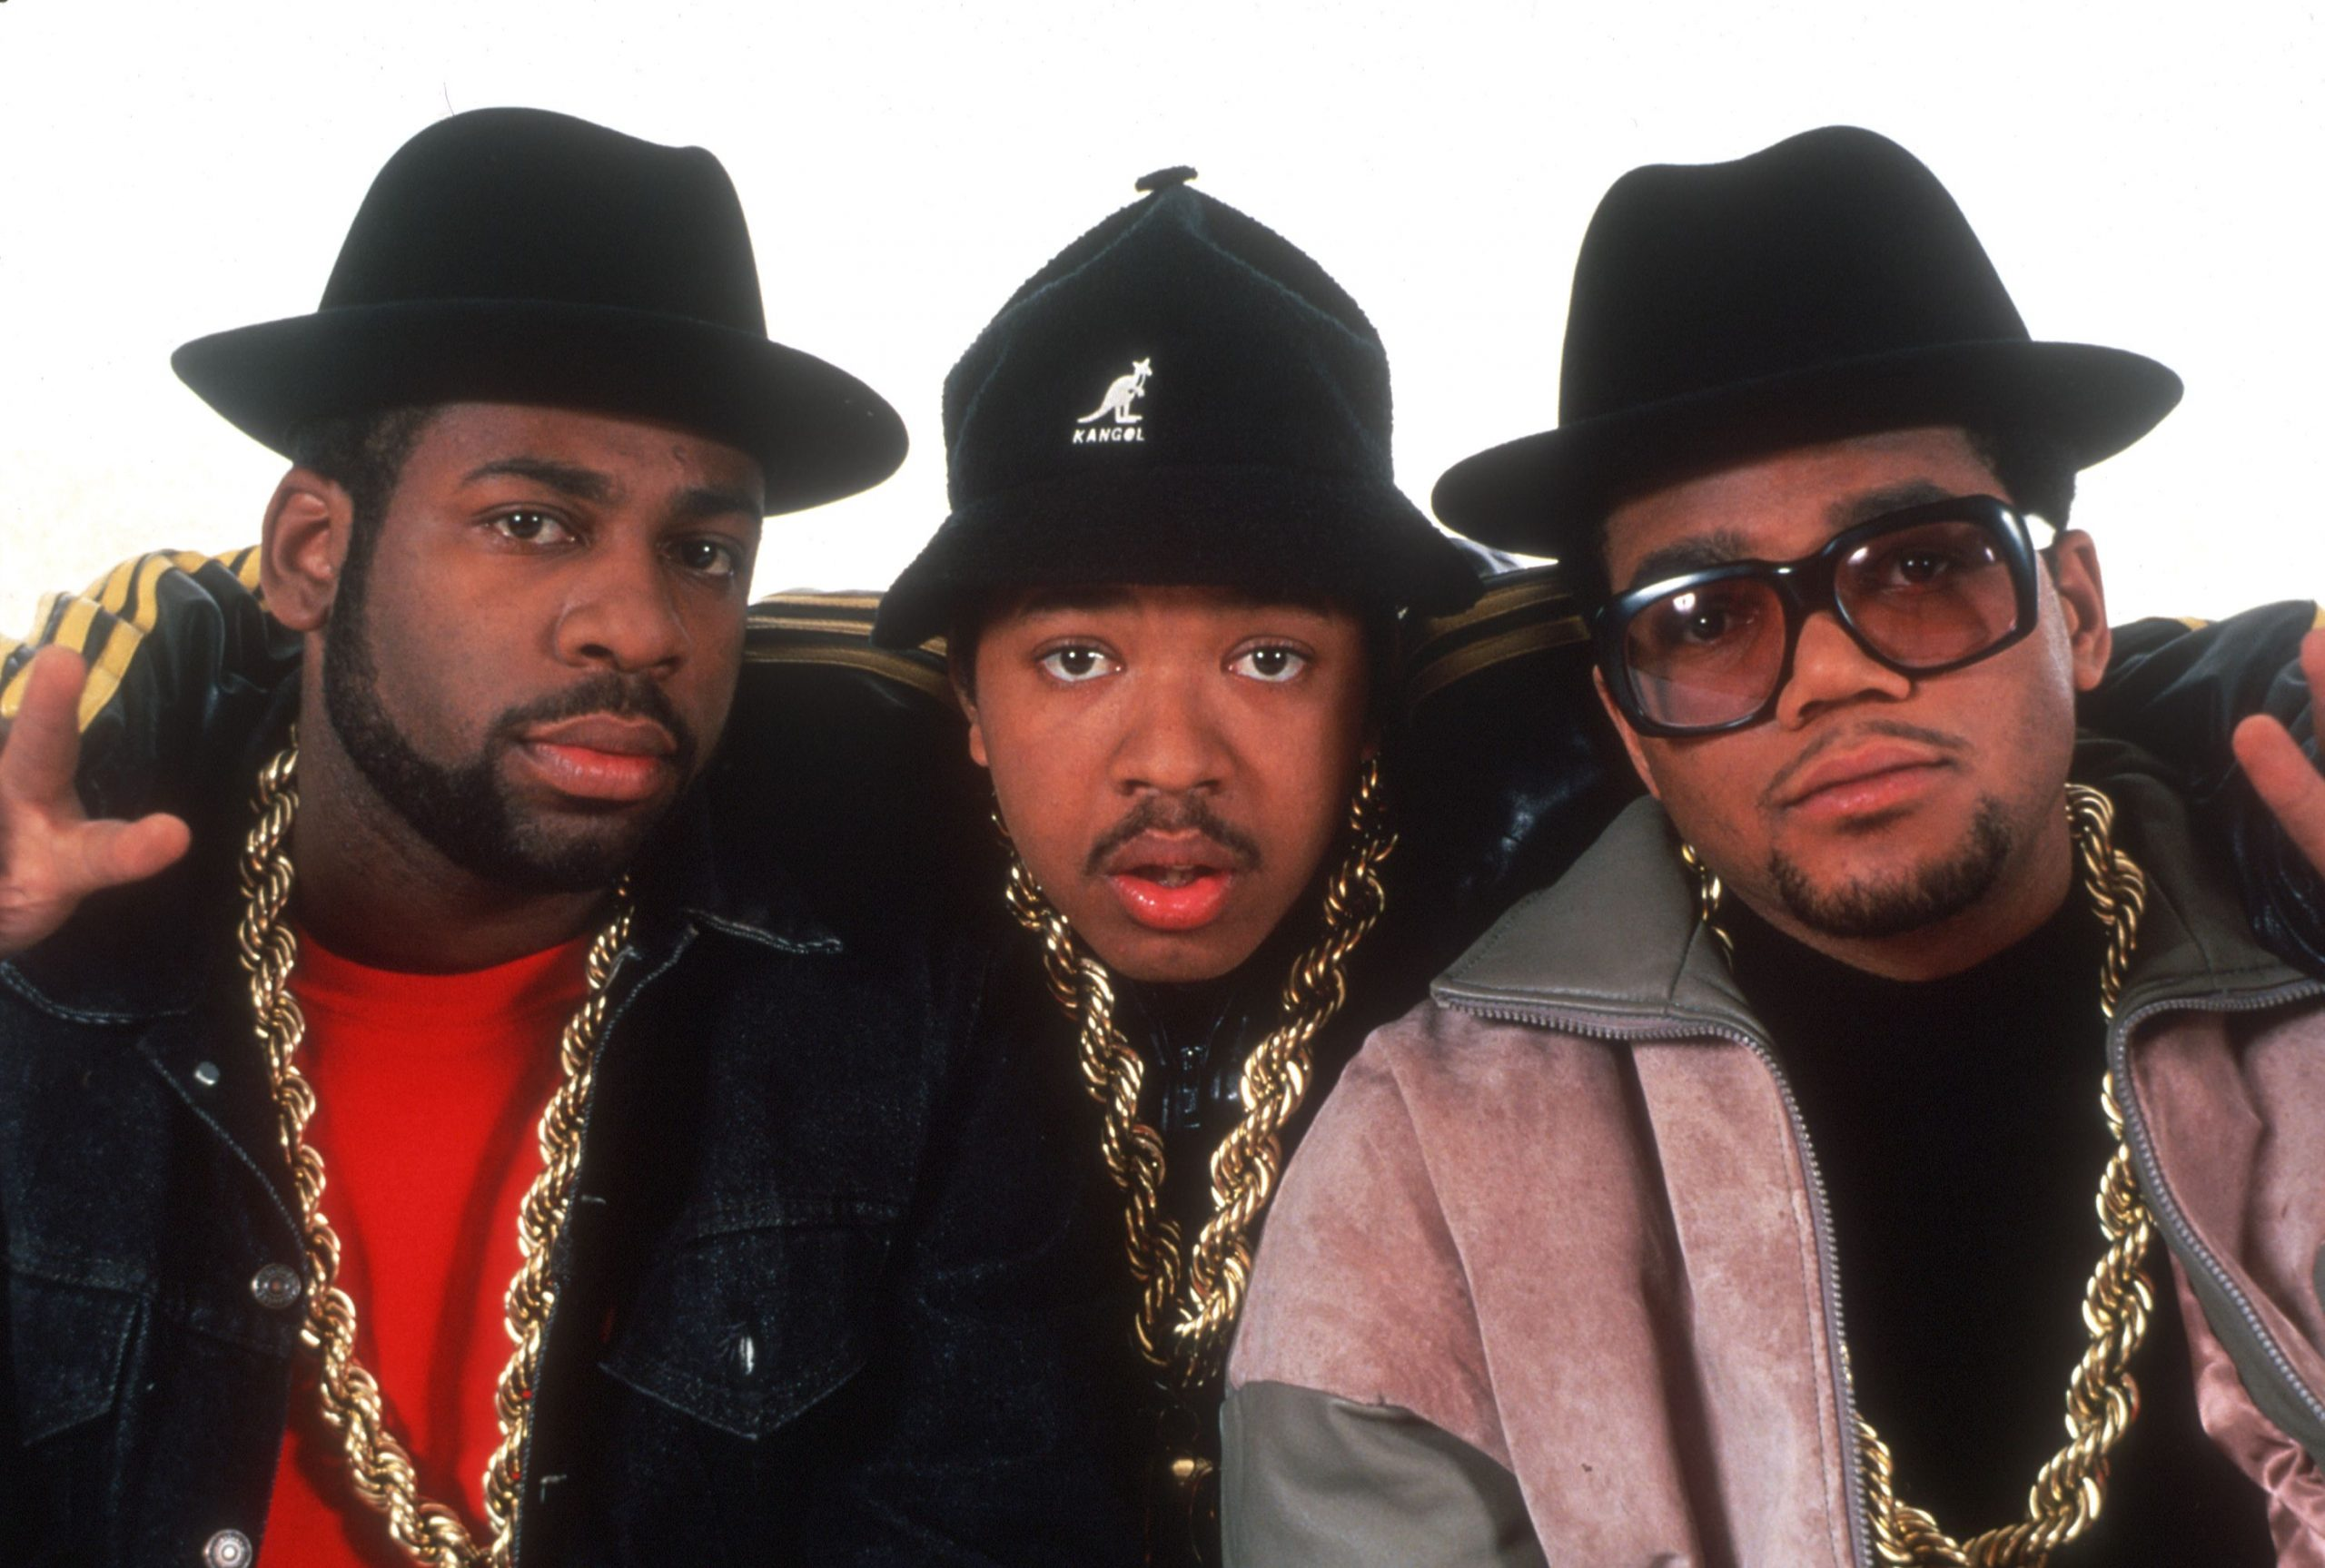 photo of run dmc photo by michael ochs archives getty news photo 1579817225 scaled The Top 15 Rappers Of The 1980s